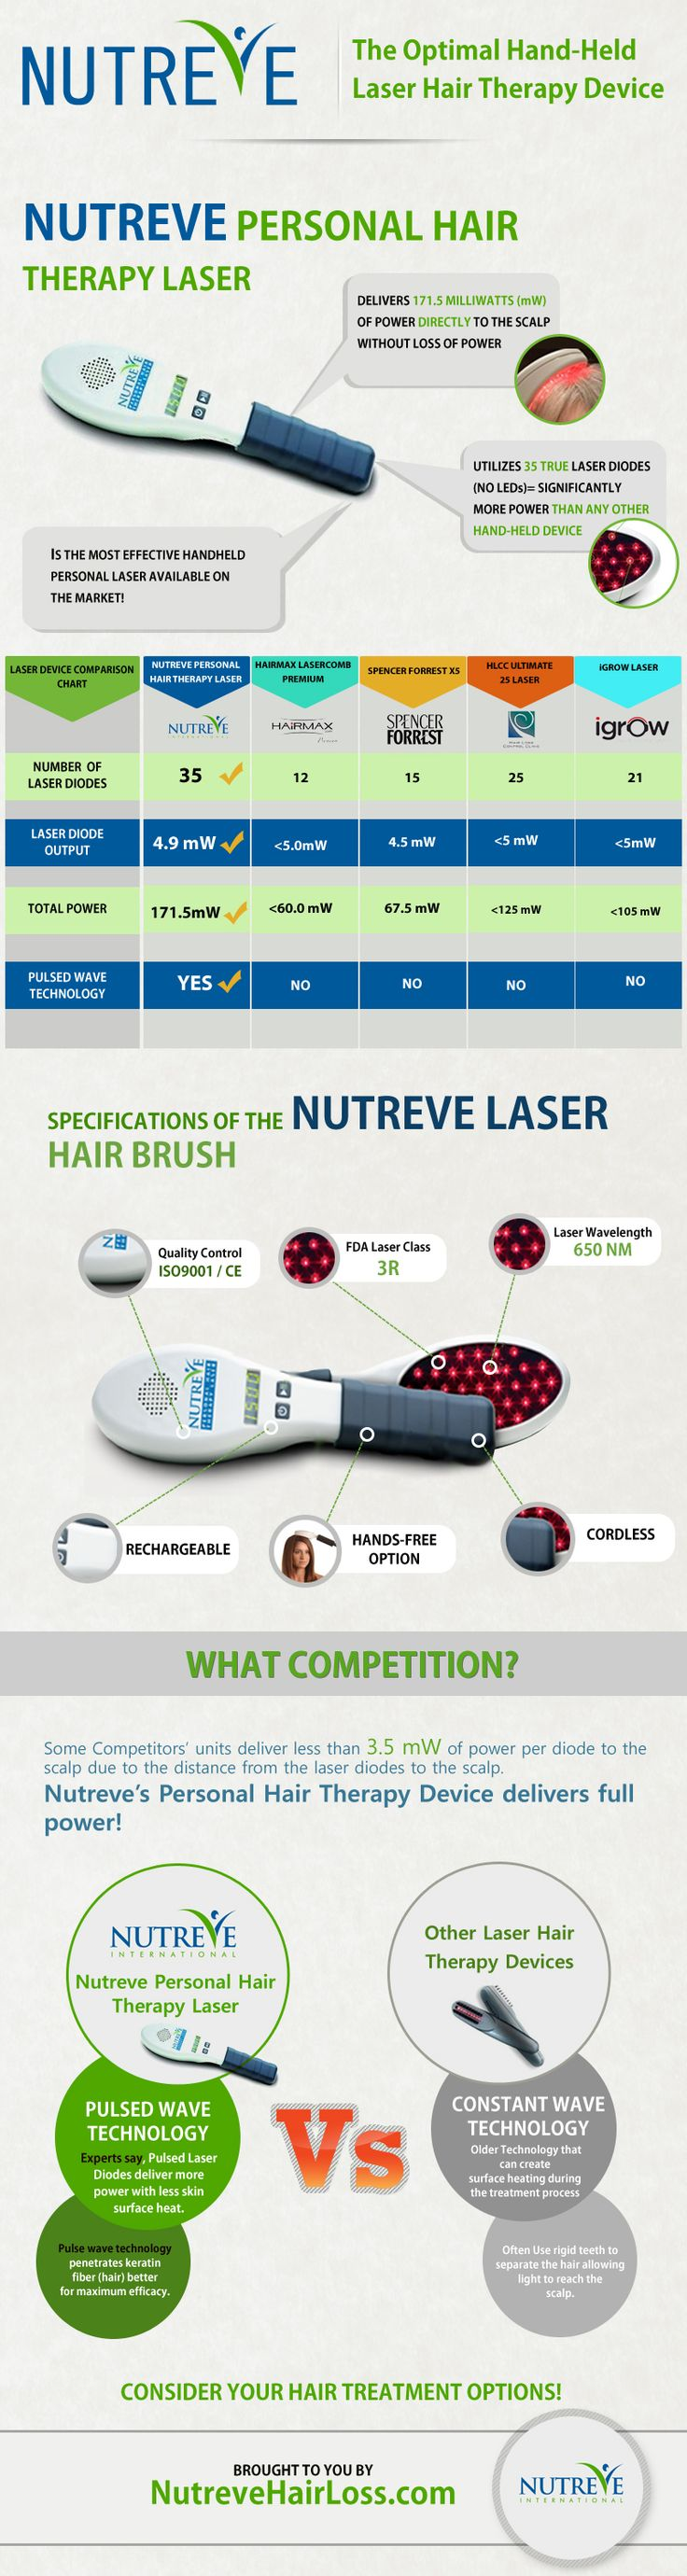 A Different Kind Of Laser Hair Brush: An Infographic - http://hairconsultant.com/a-different-kind-of-laser-hair-brush-an-infographic/